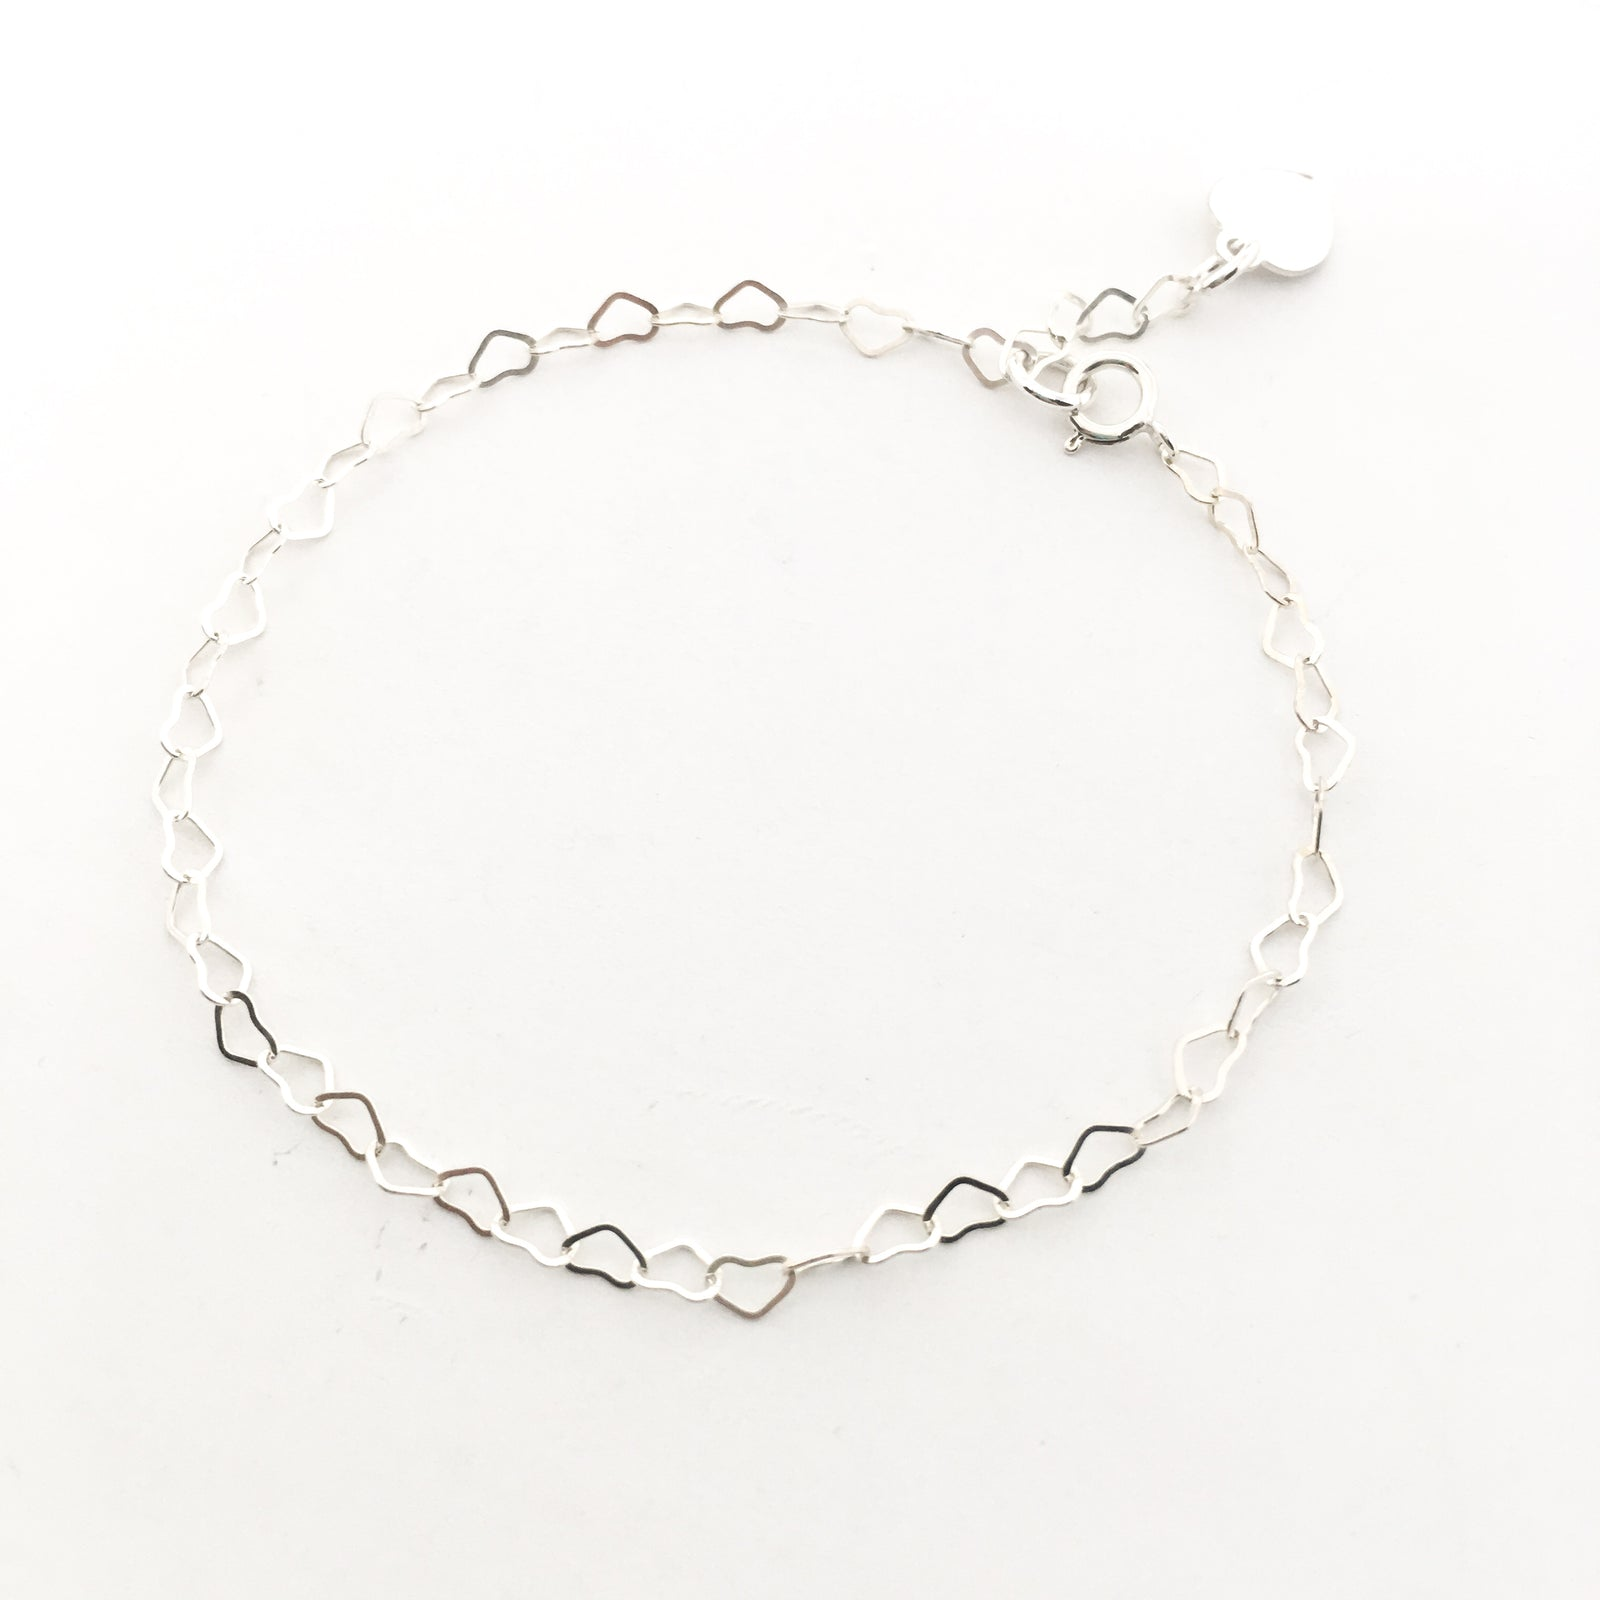 STERLING SILVER HEART CHAIN BRACELET